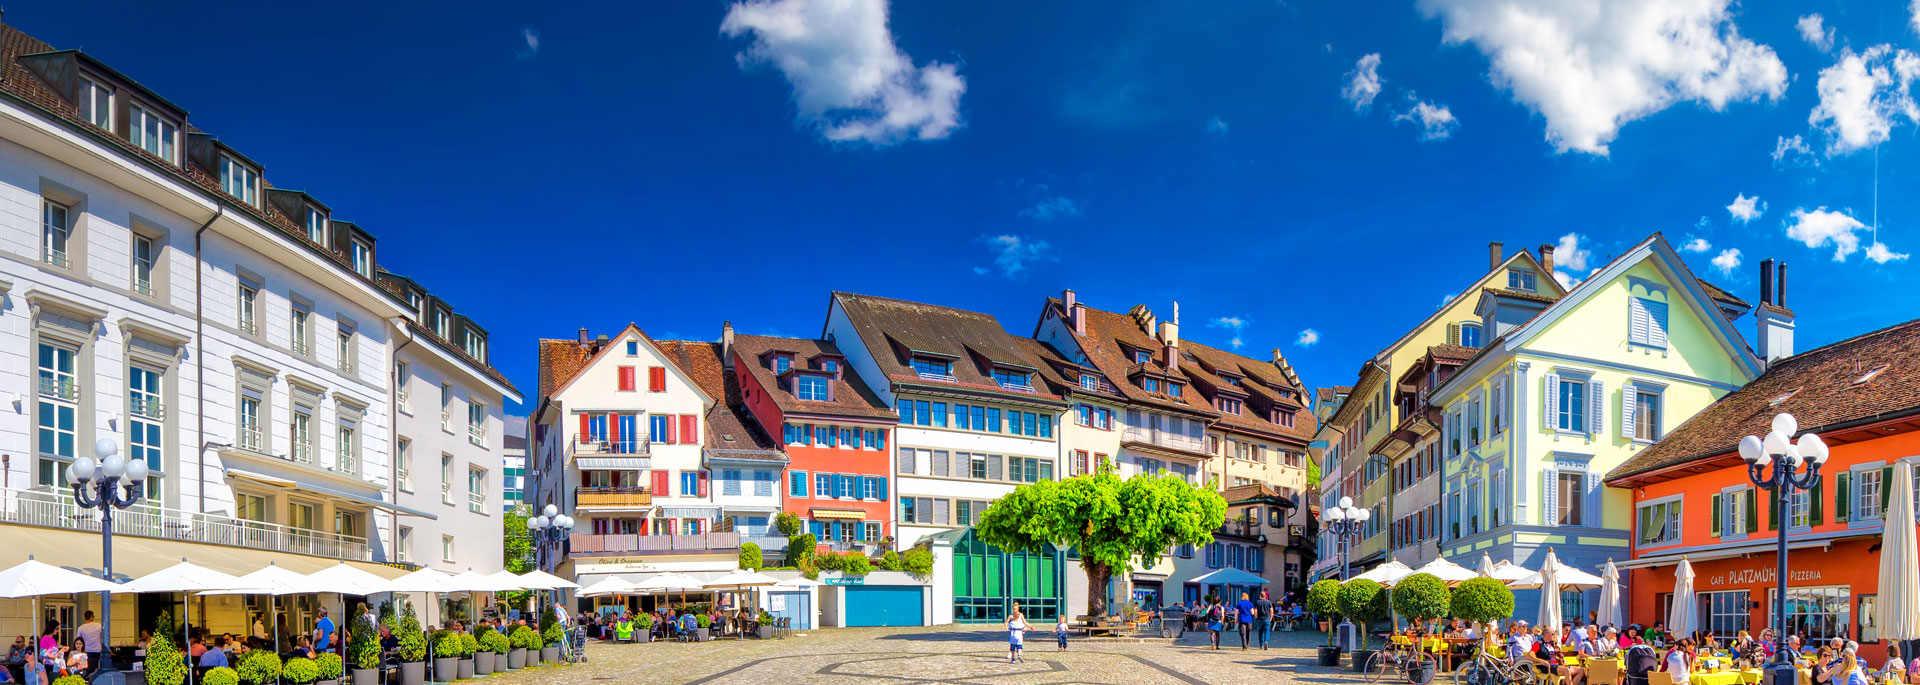 SIG Fiduciaire, Accountants & company formation in Switzerland